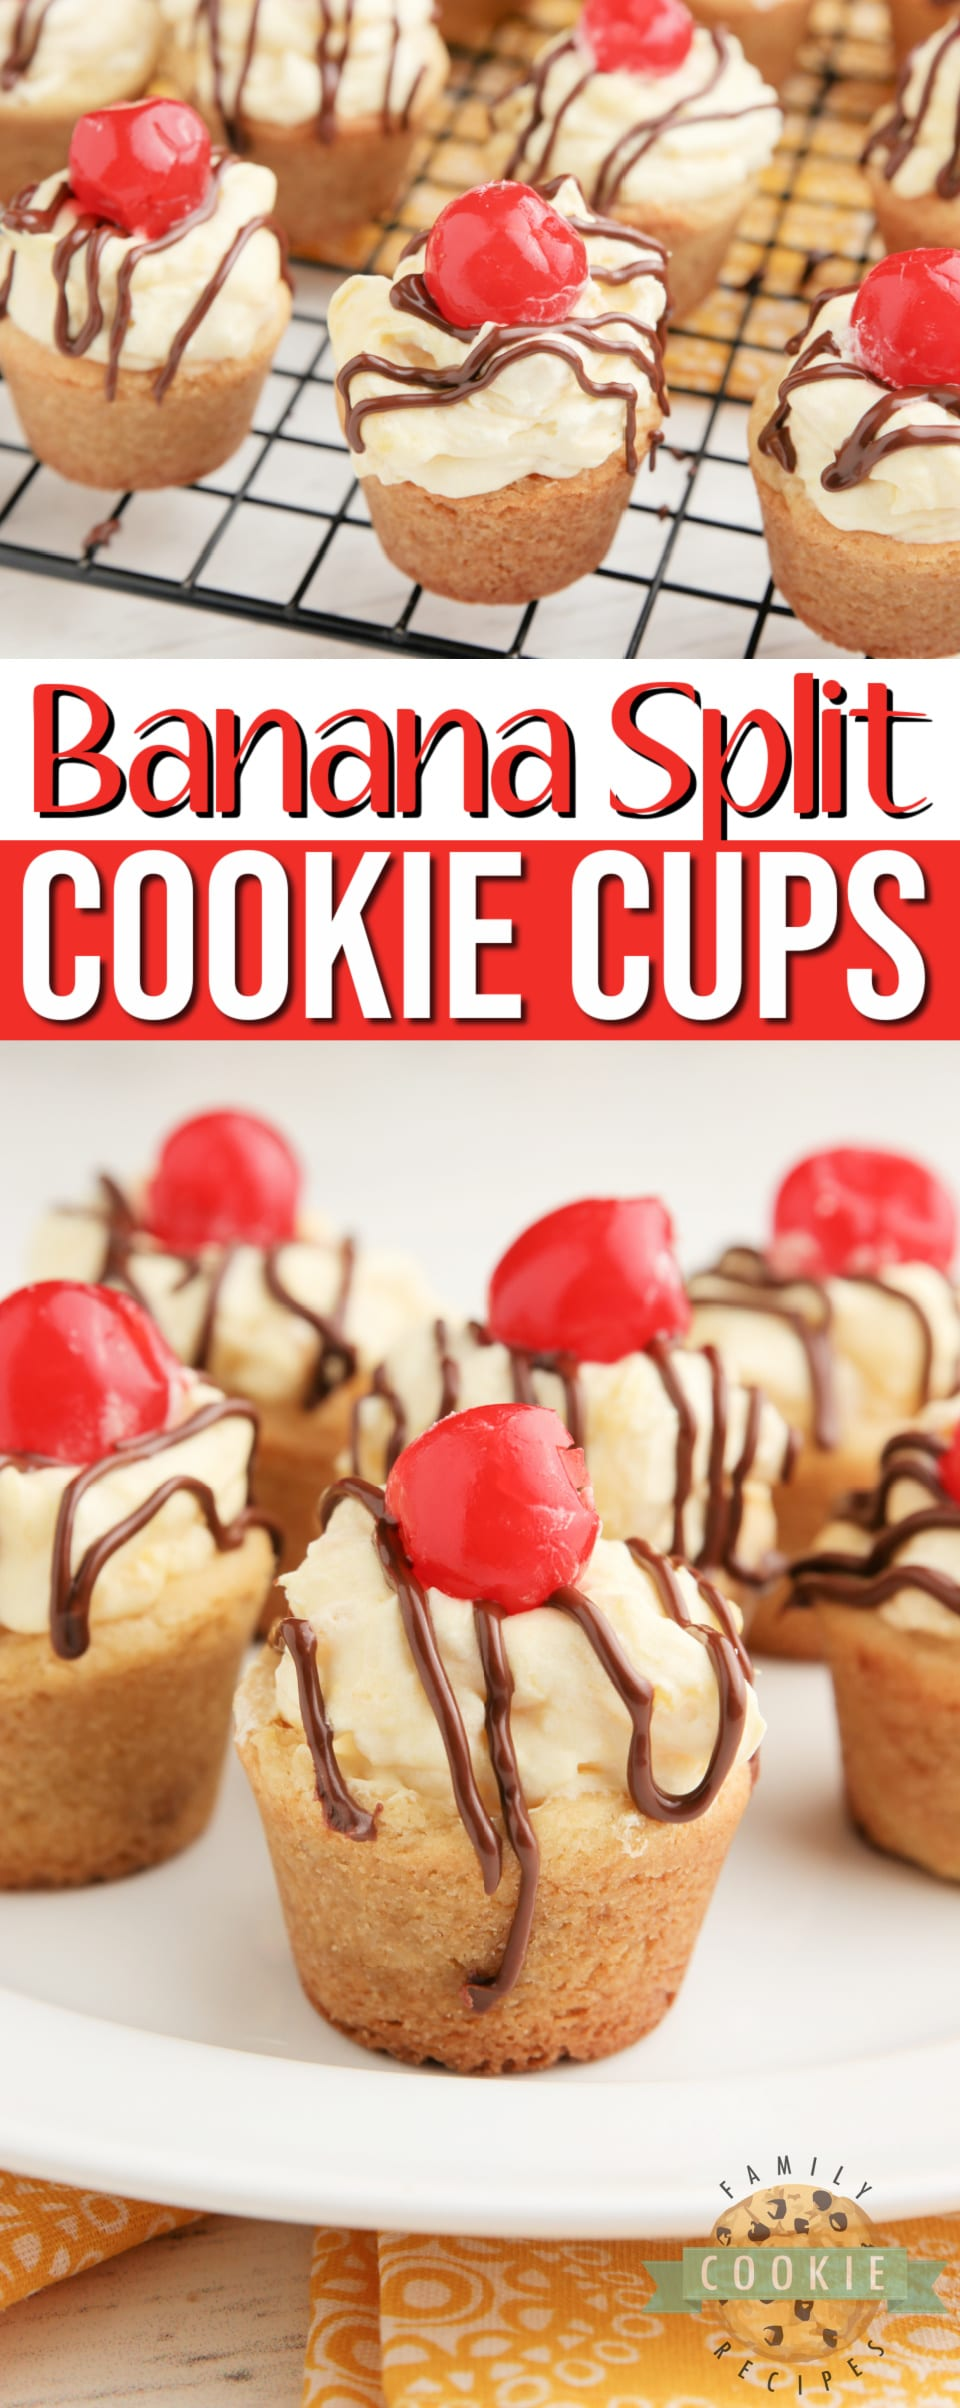 Banana Split Cookie Cups taste like your favorite banana split dessert in cookie form! Banana flavored cookies filled with pineapple cream and topped with chocolate and a cherry! via @familycookierecipes